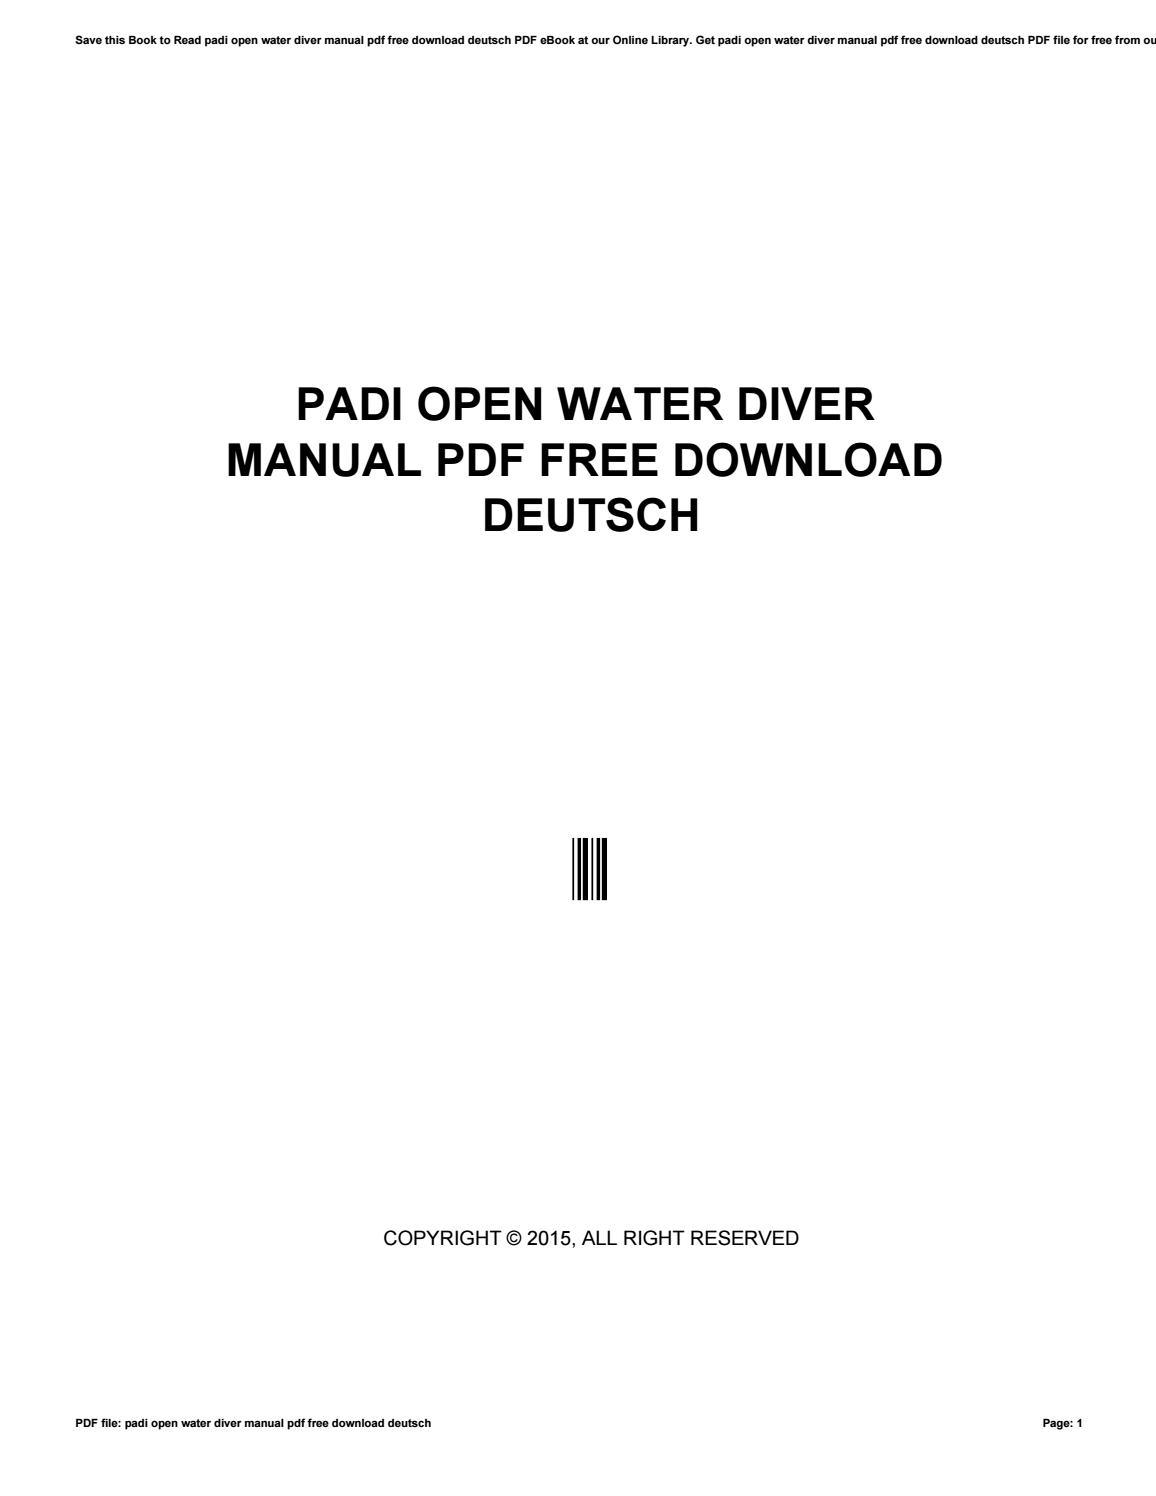 Padi Open Water Diver Manual Pdf Free Download